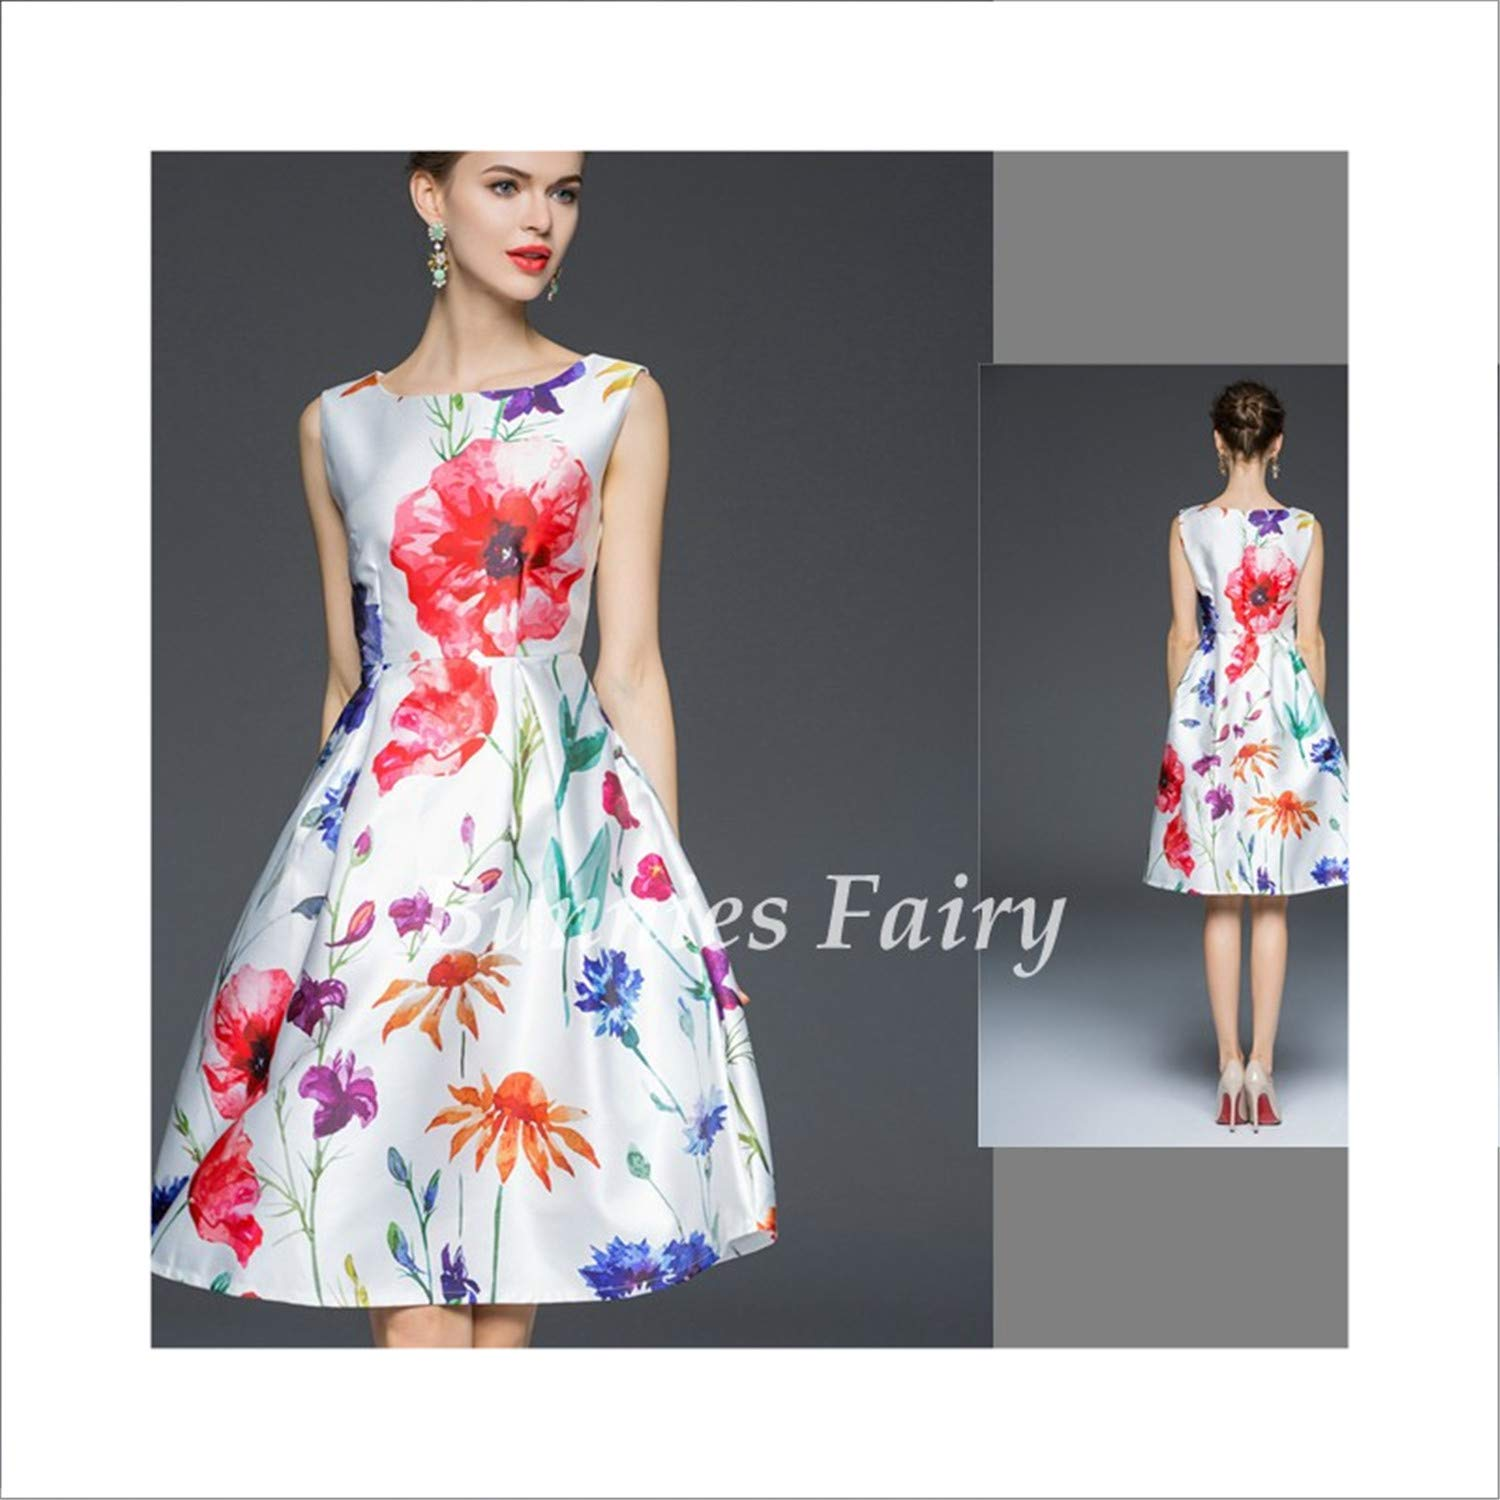 16 Women Vintage Retro Flower Floral Print Vest Dresses Sleeveless ONeck